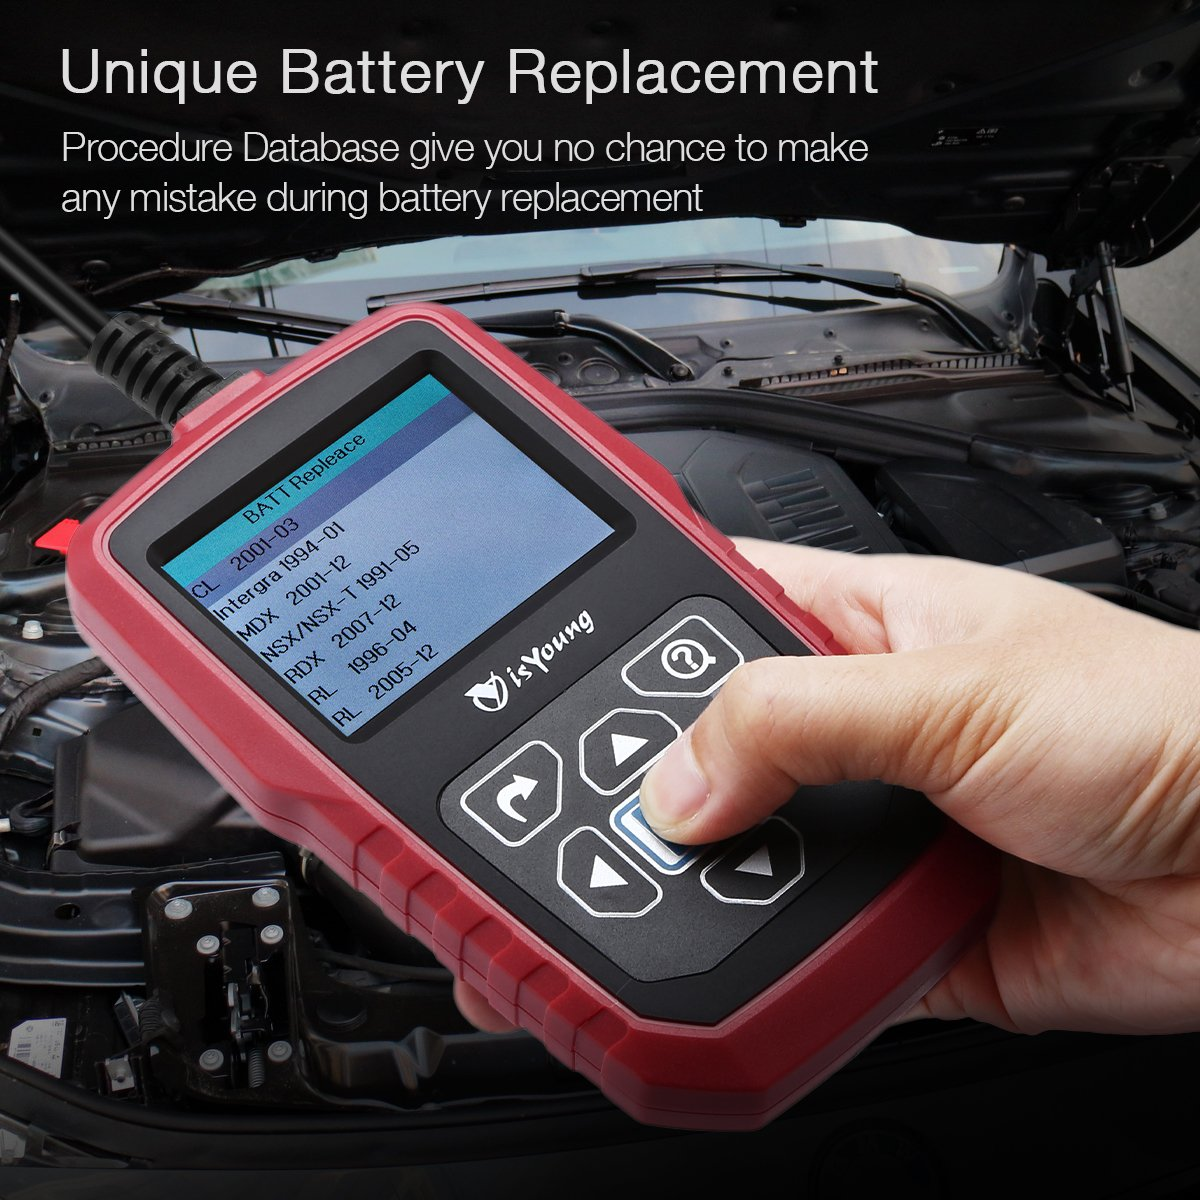 isYoung 12V&24V 100-2000 CCA Automotive Car Battery Load Tester, Cranking and Charging System Test Scan Tool for Cars, Heavy Duty Trucks, Motorcycle, and Marine Boad by isYoung (Image #7)